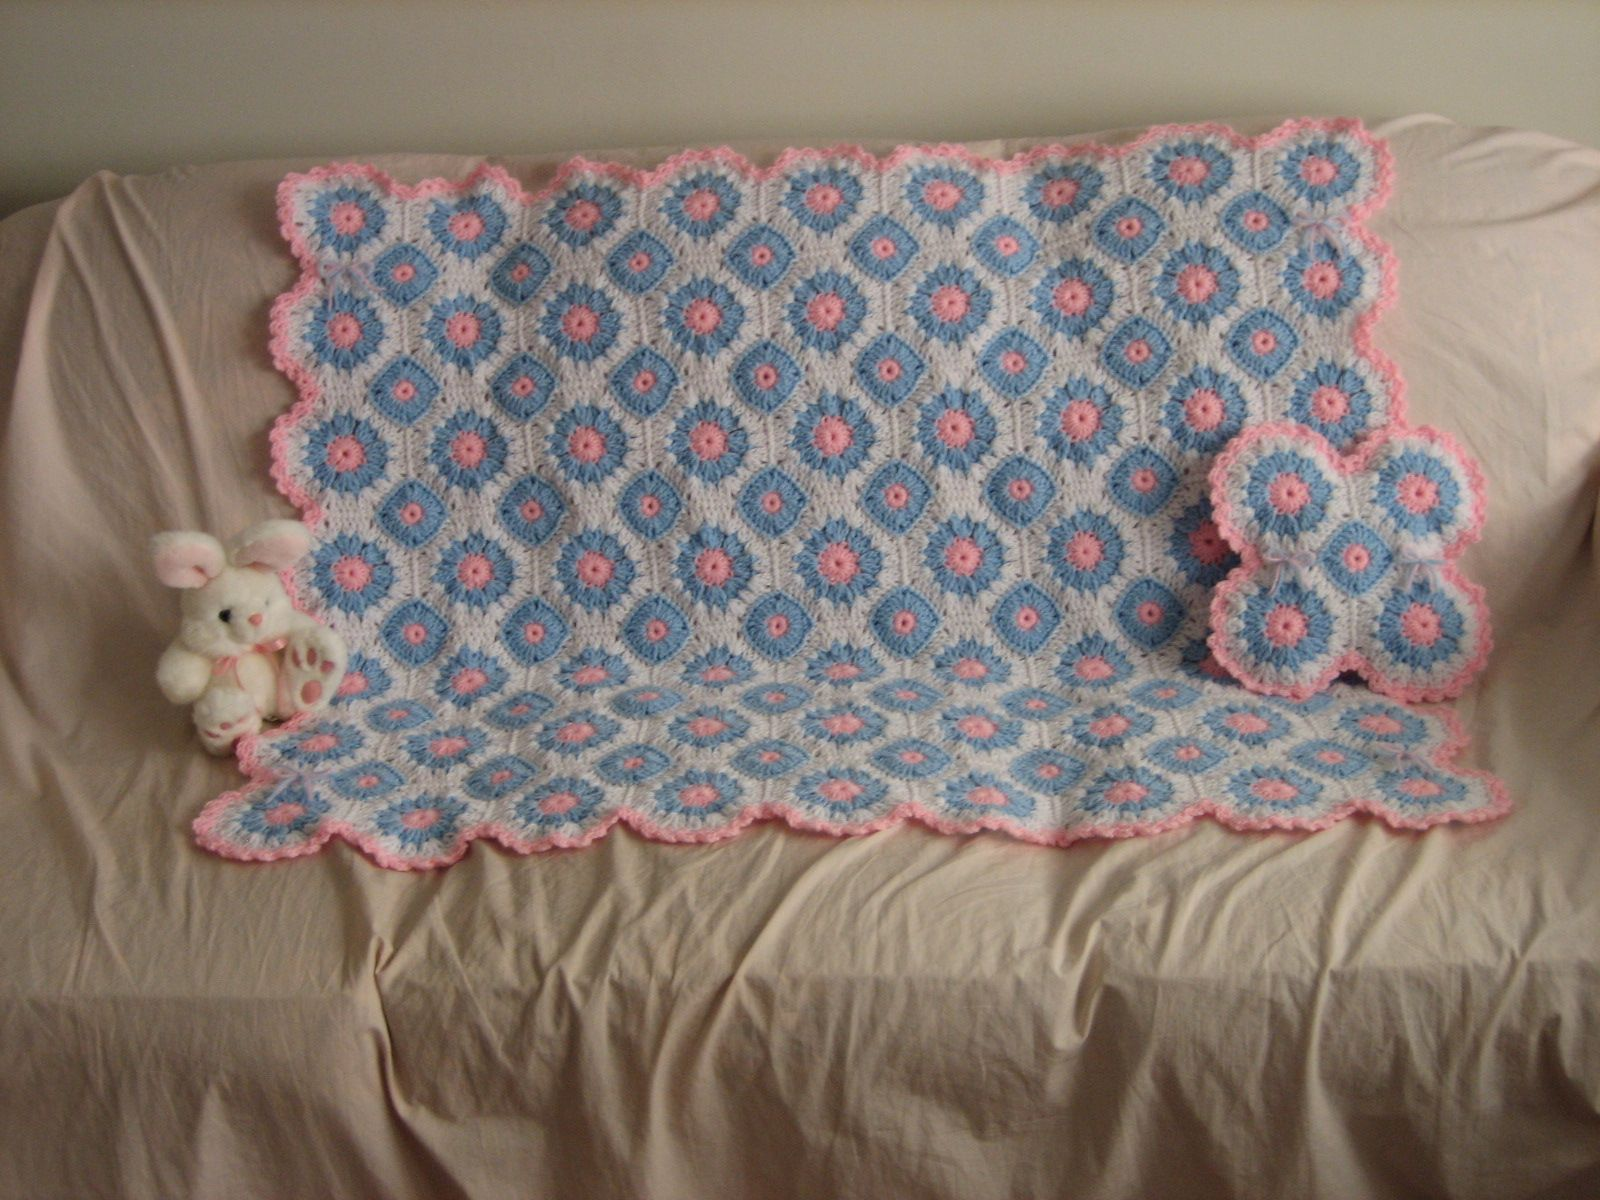 Lacy Crochet Afghan and Pillow Set | Crocheted afghans, Afghans and ...